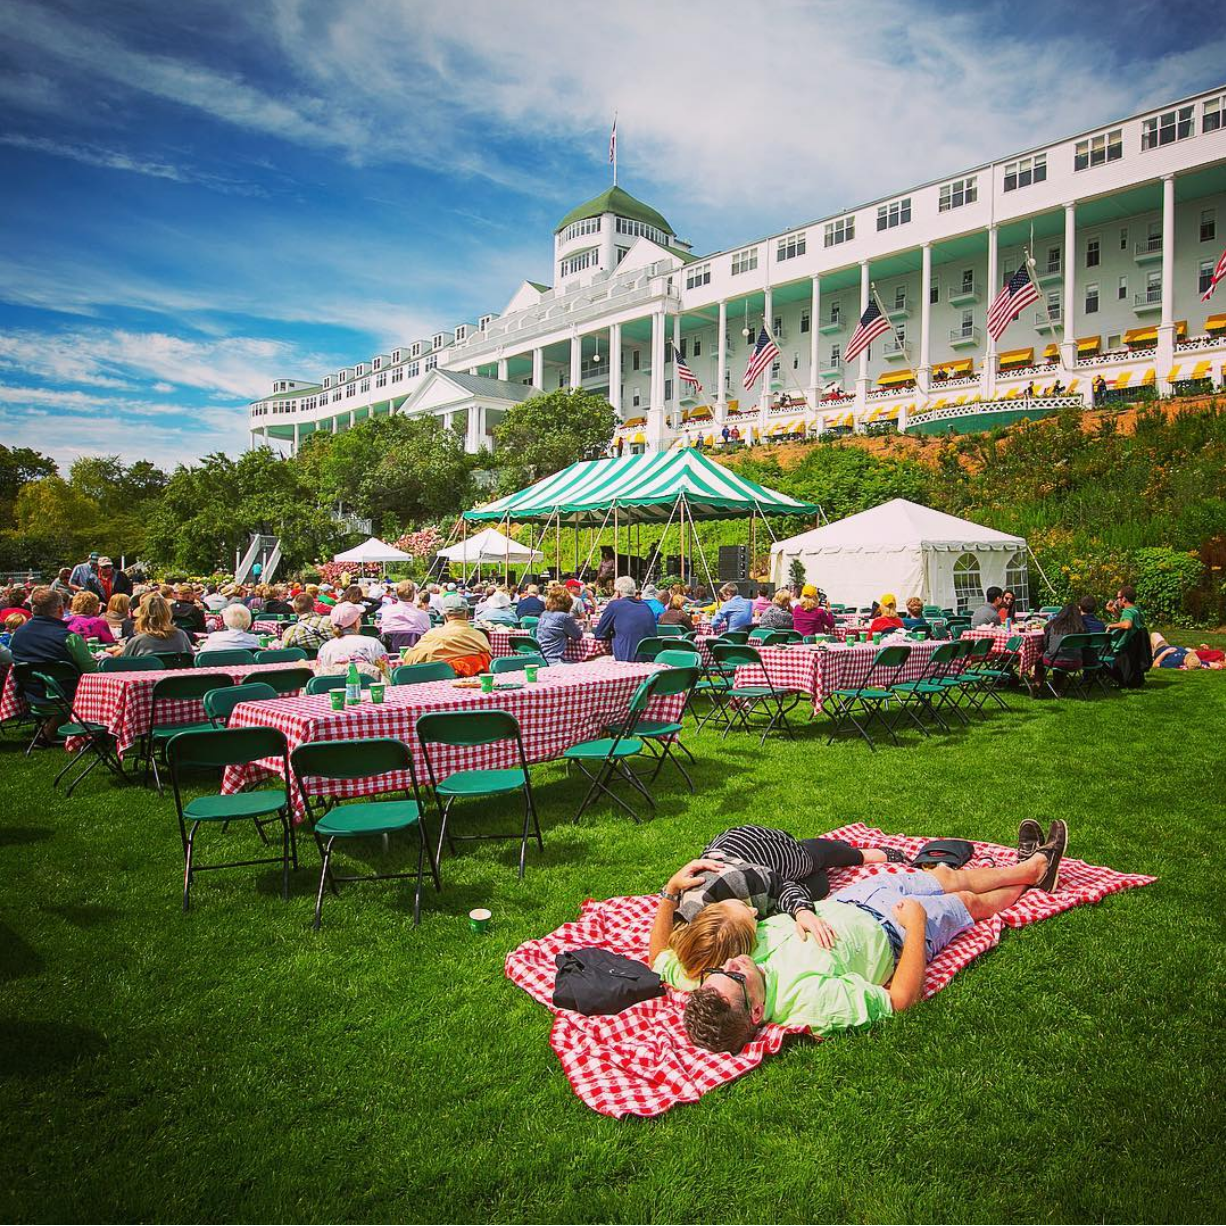 Grand Hotel Michigan Boyne City Grand Hotel Mackinac Island